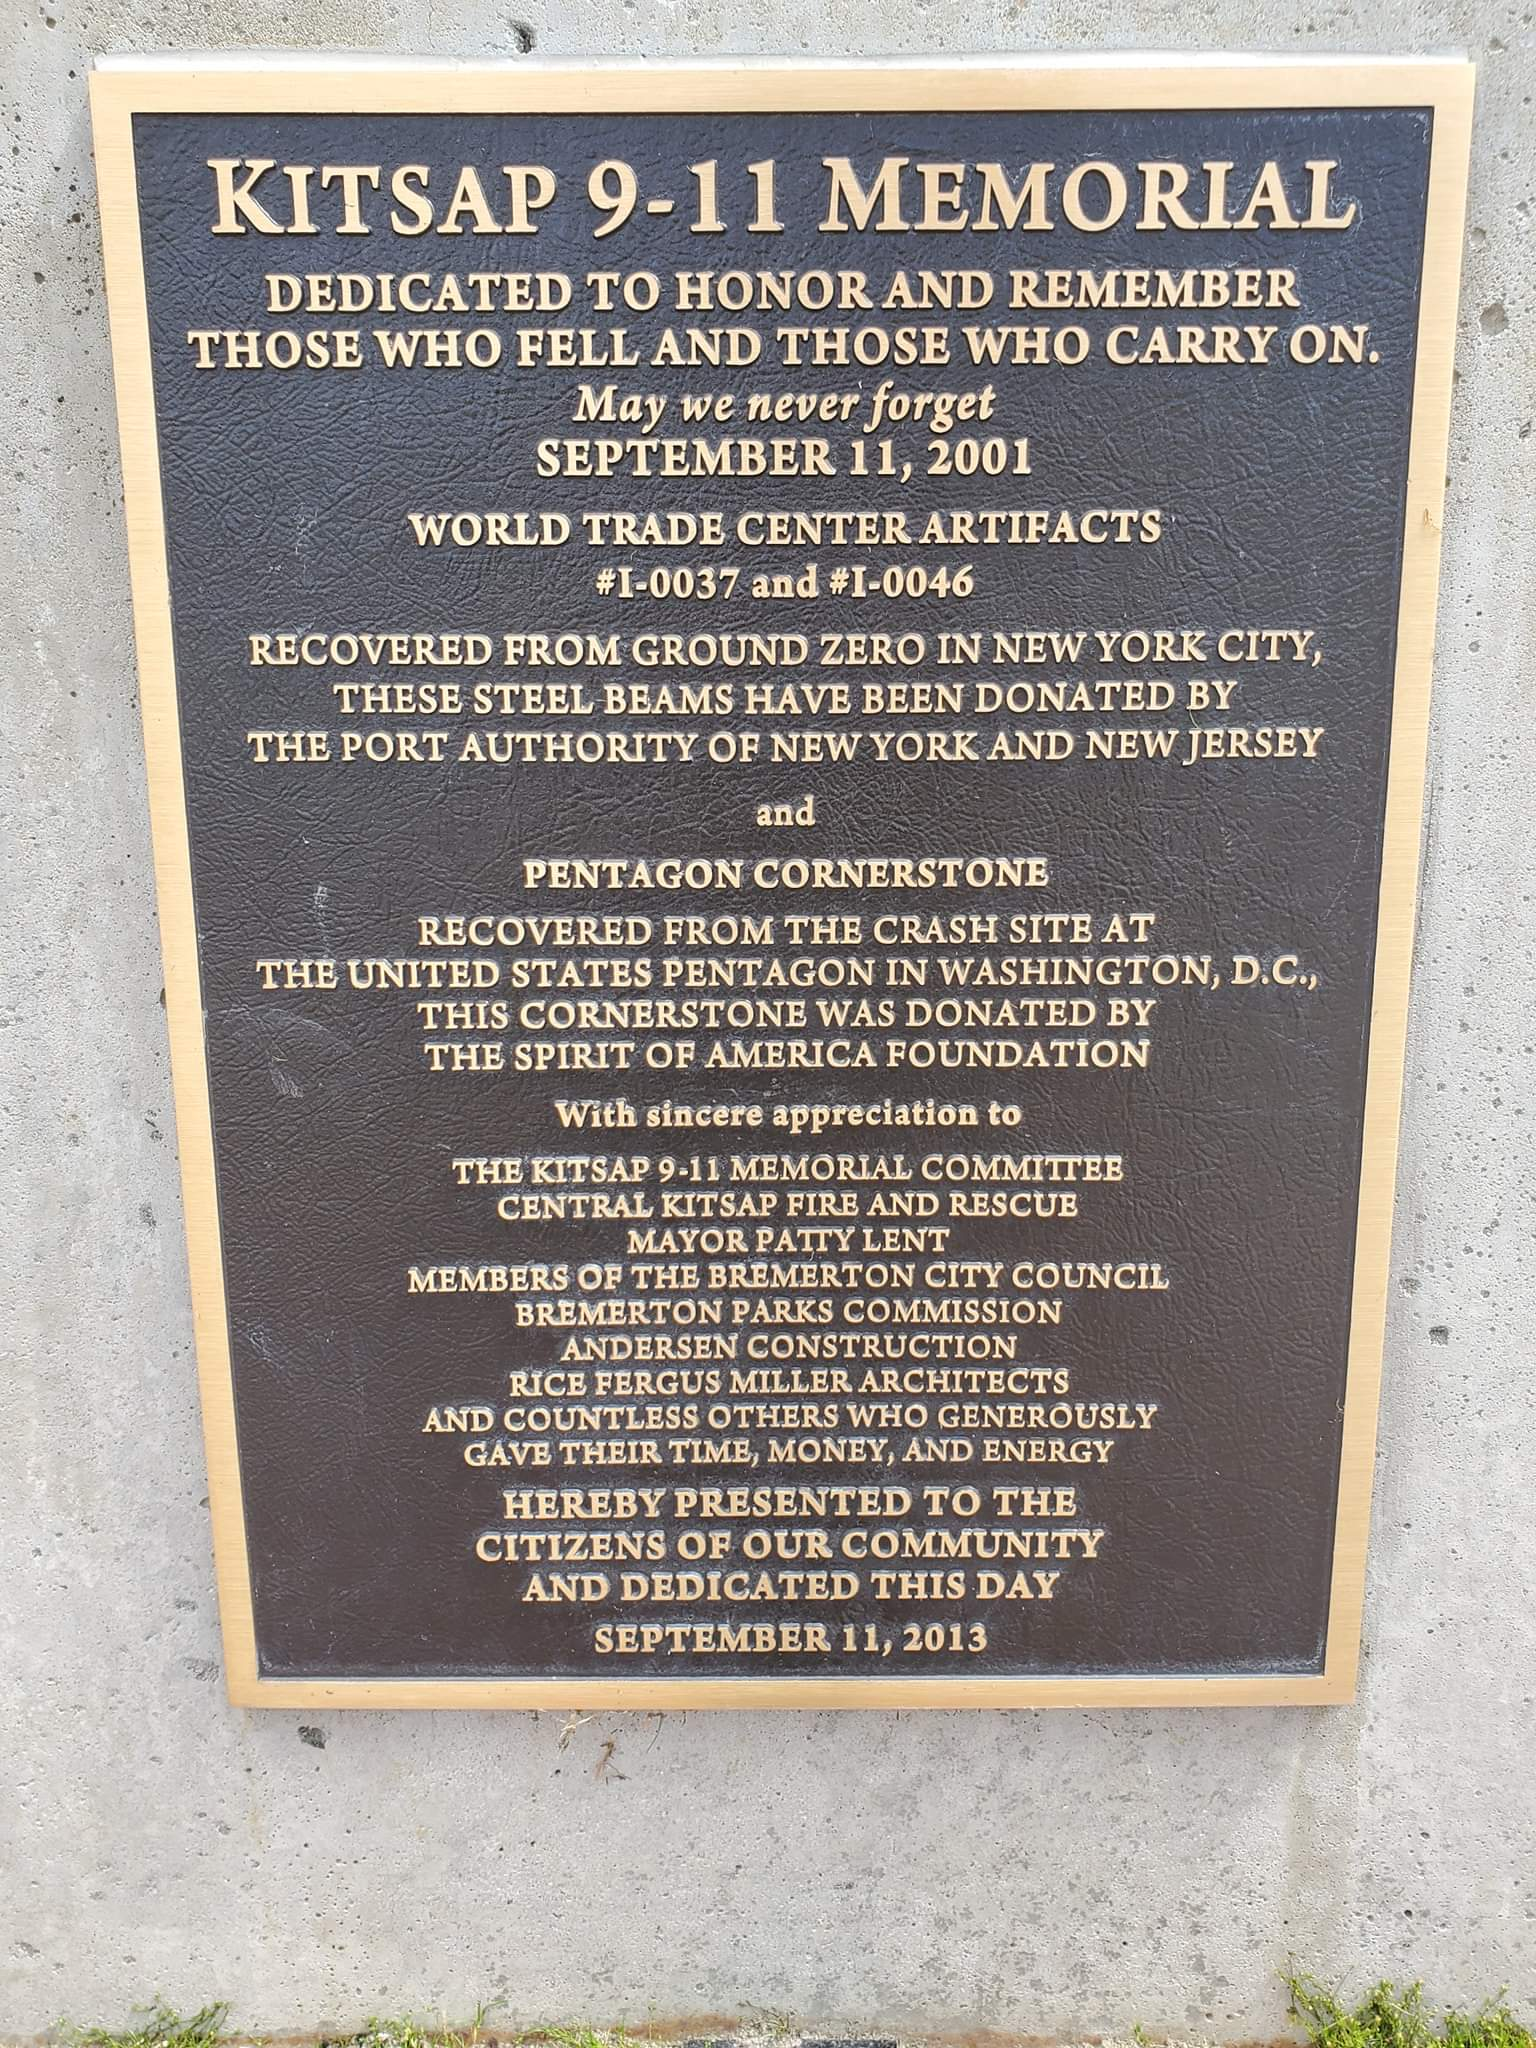 The plaque of recognition at the Kitsap 9/11 Memorial site